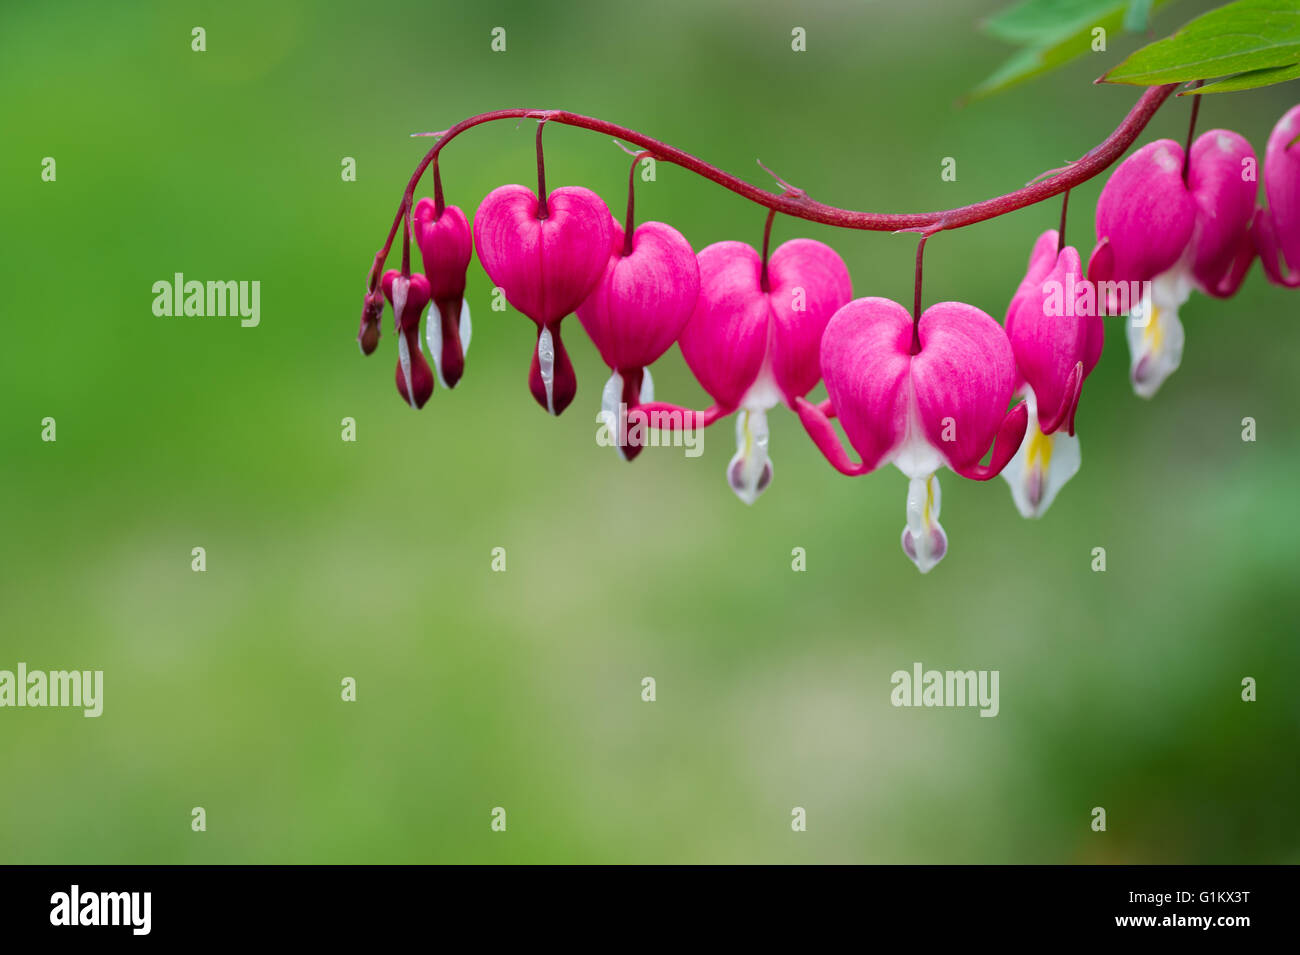 Bleeding Heart flower plant - Stock Image